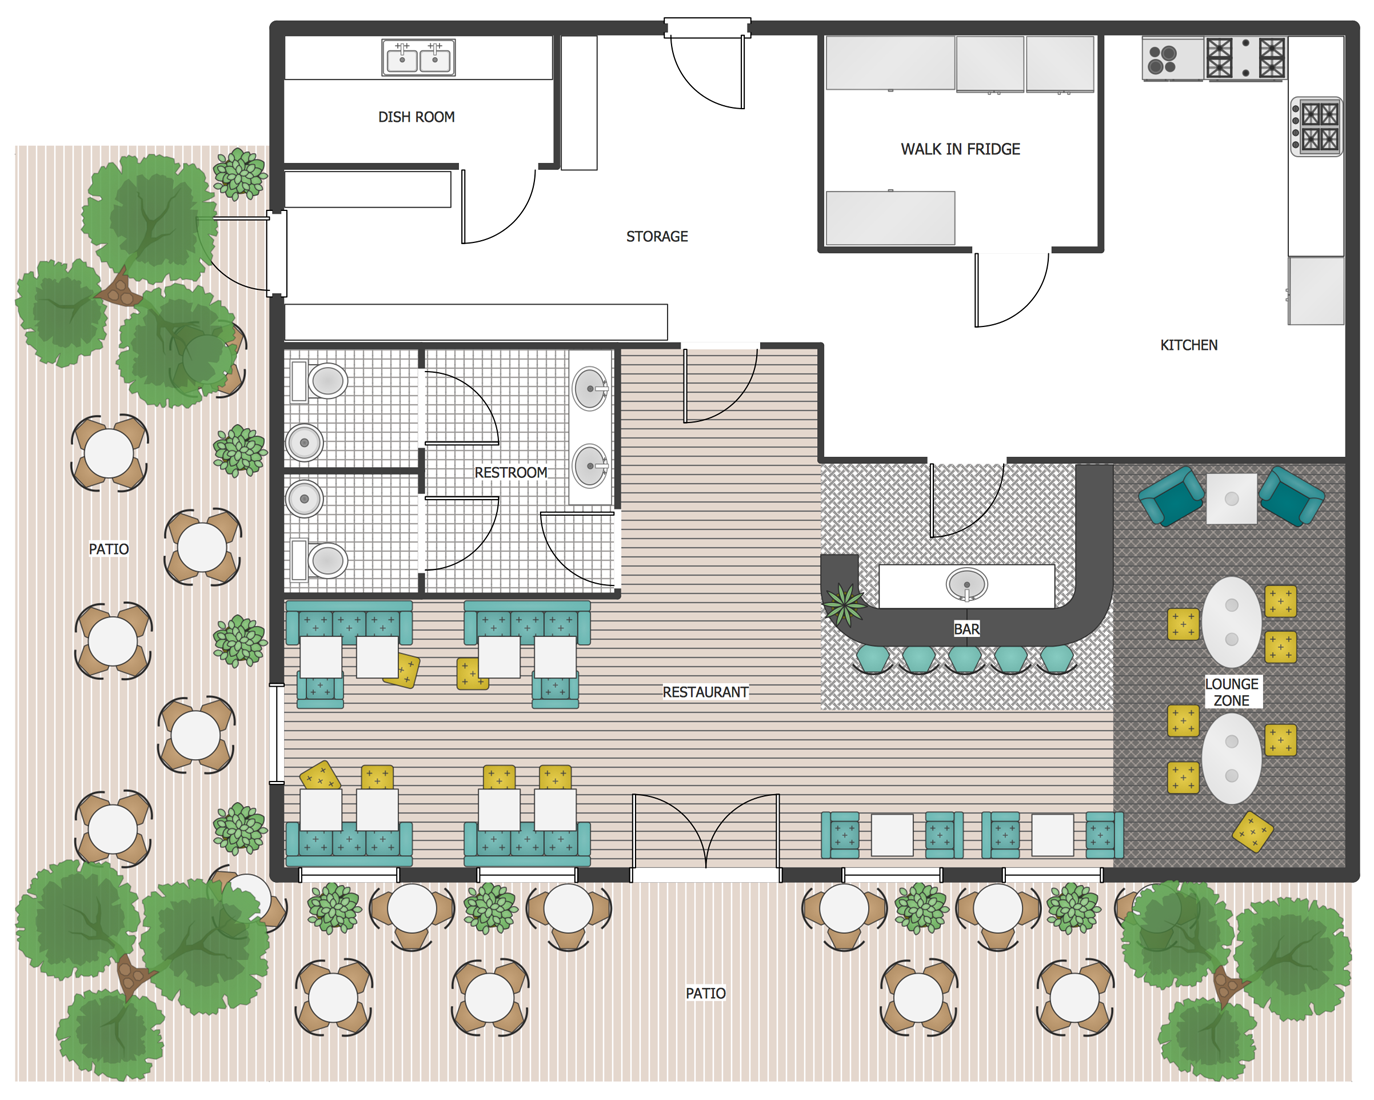 Furniture Layout Tools Cafe And Restaurant Floor Plan Solution Conceptdraw Com